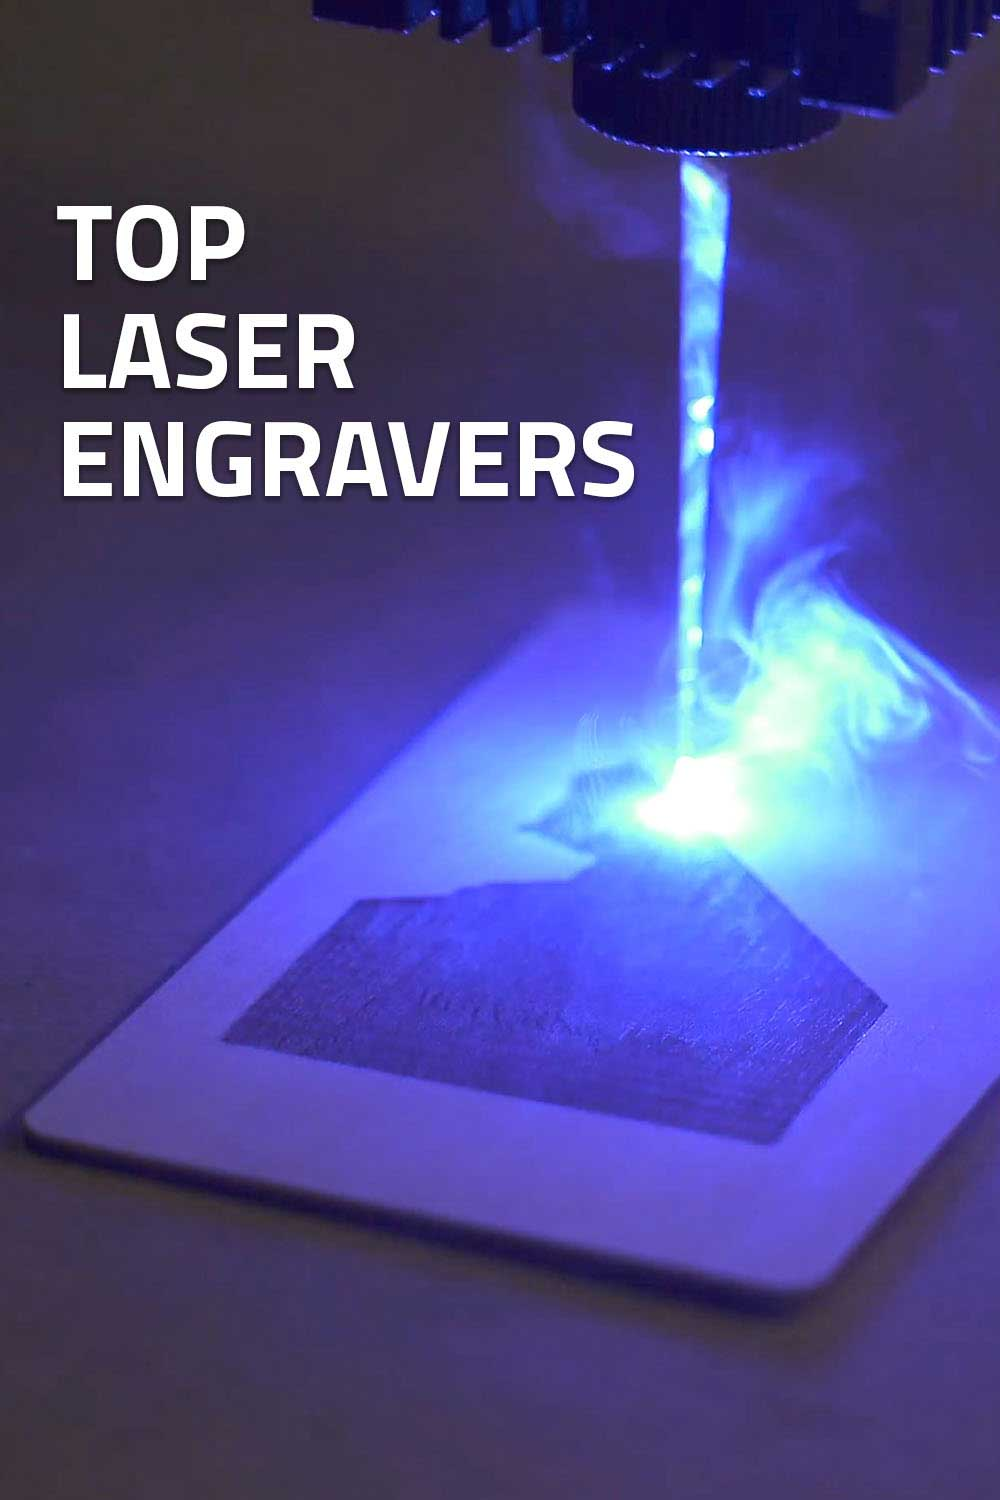 Looking to get into laser engraving or laser cutting?  This is a full breakdown of the top machines as well as recommendations on how to get into creating with lasers #maker #laserengraved #diy #makerspace